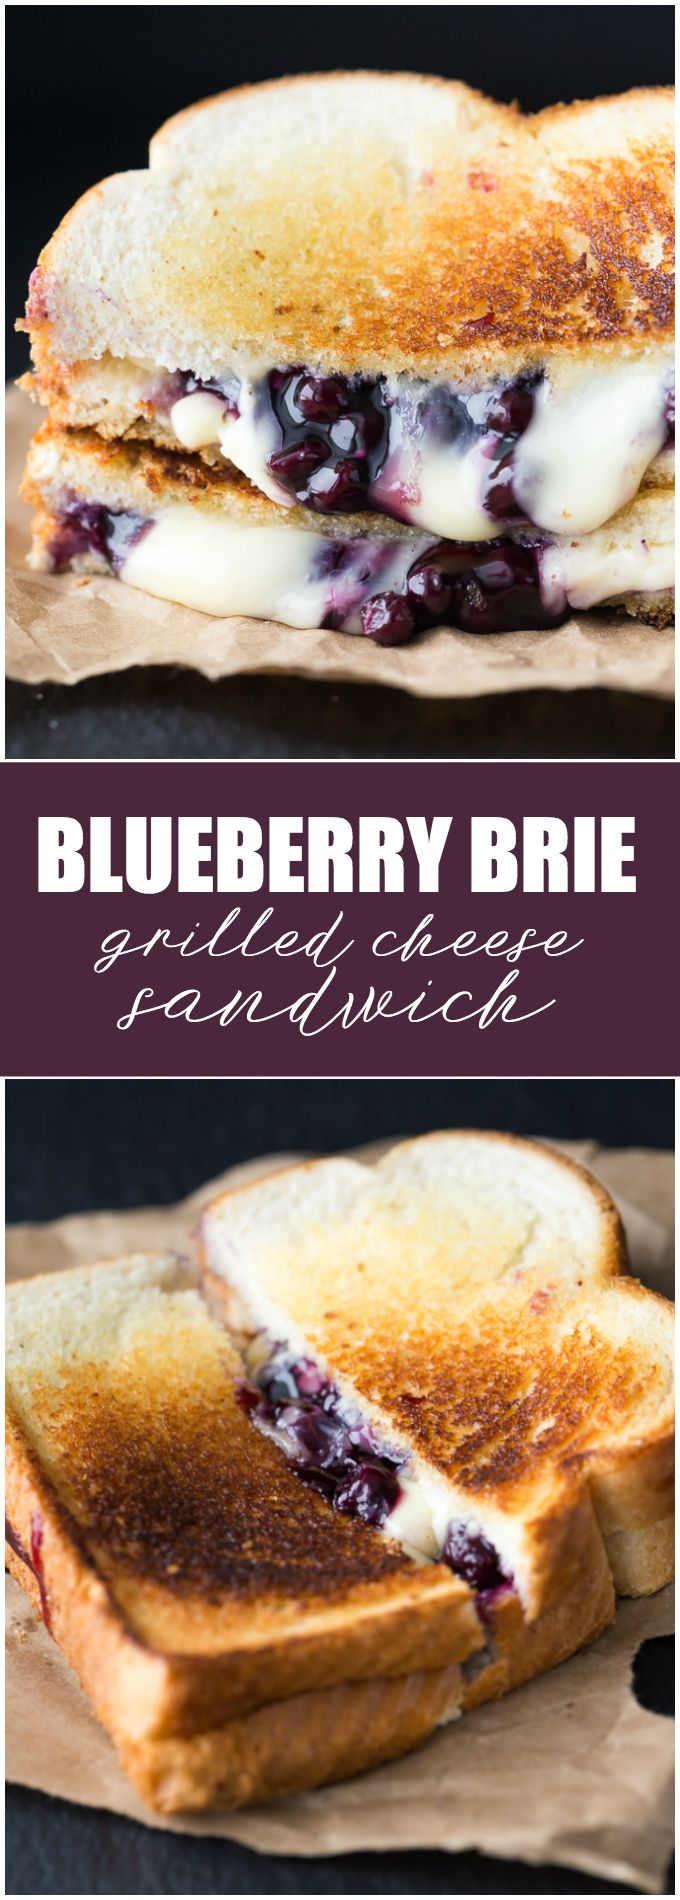 Blueberry Brie Grilled Cheese Sandwich #sandwichrecipes